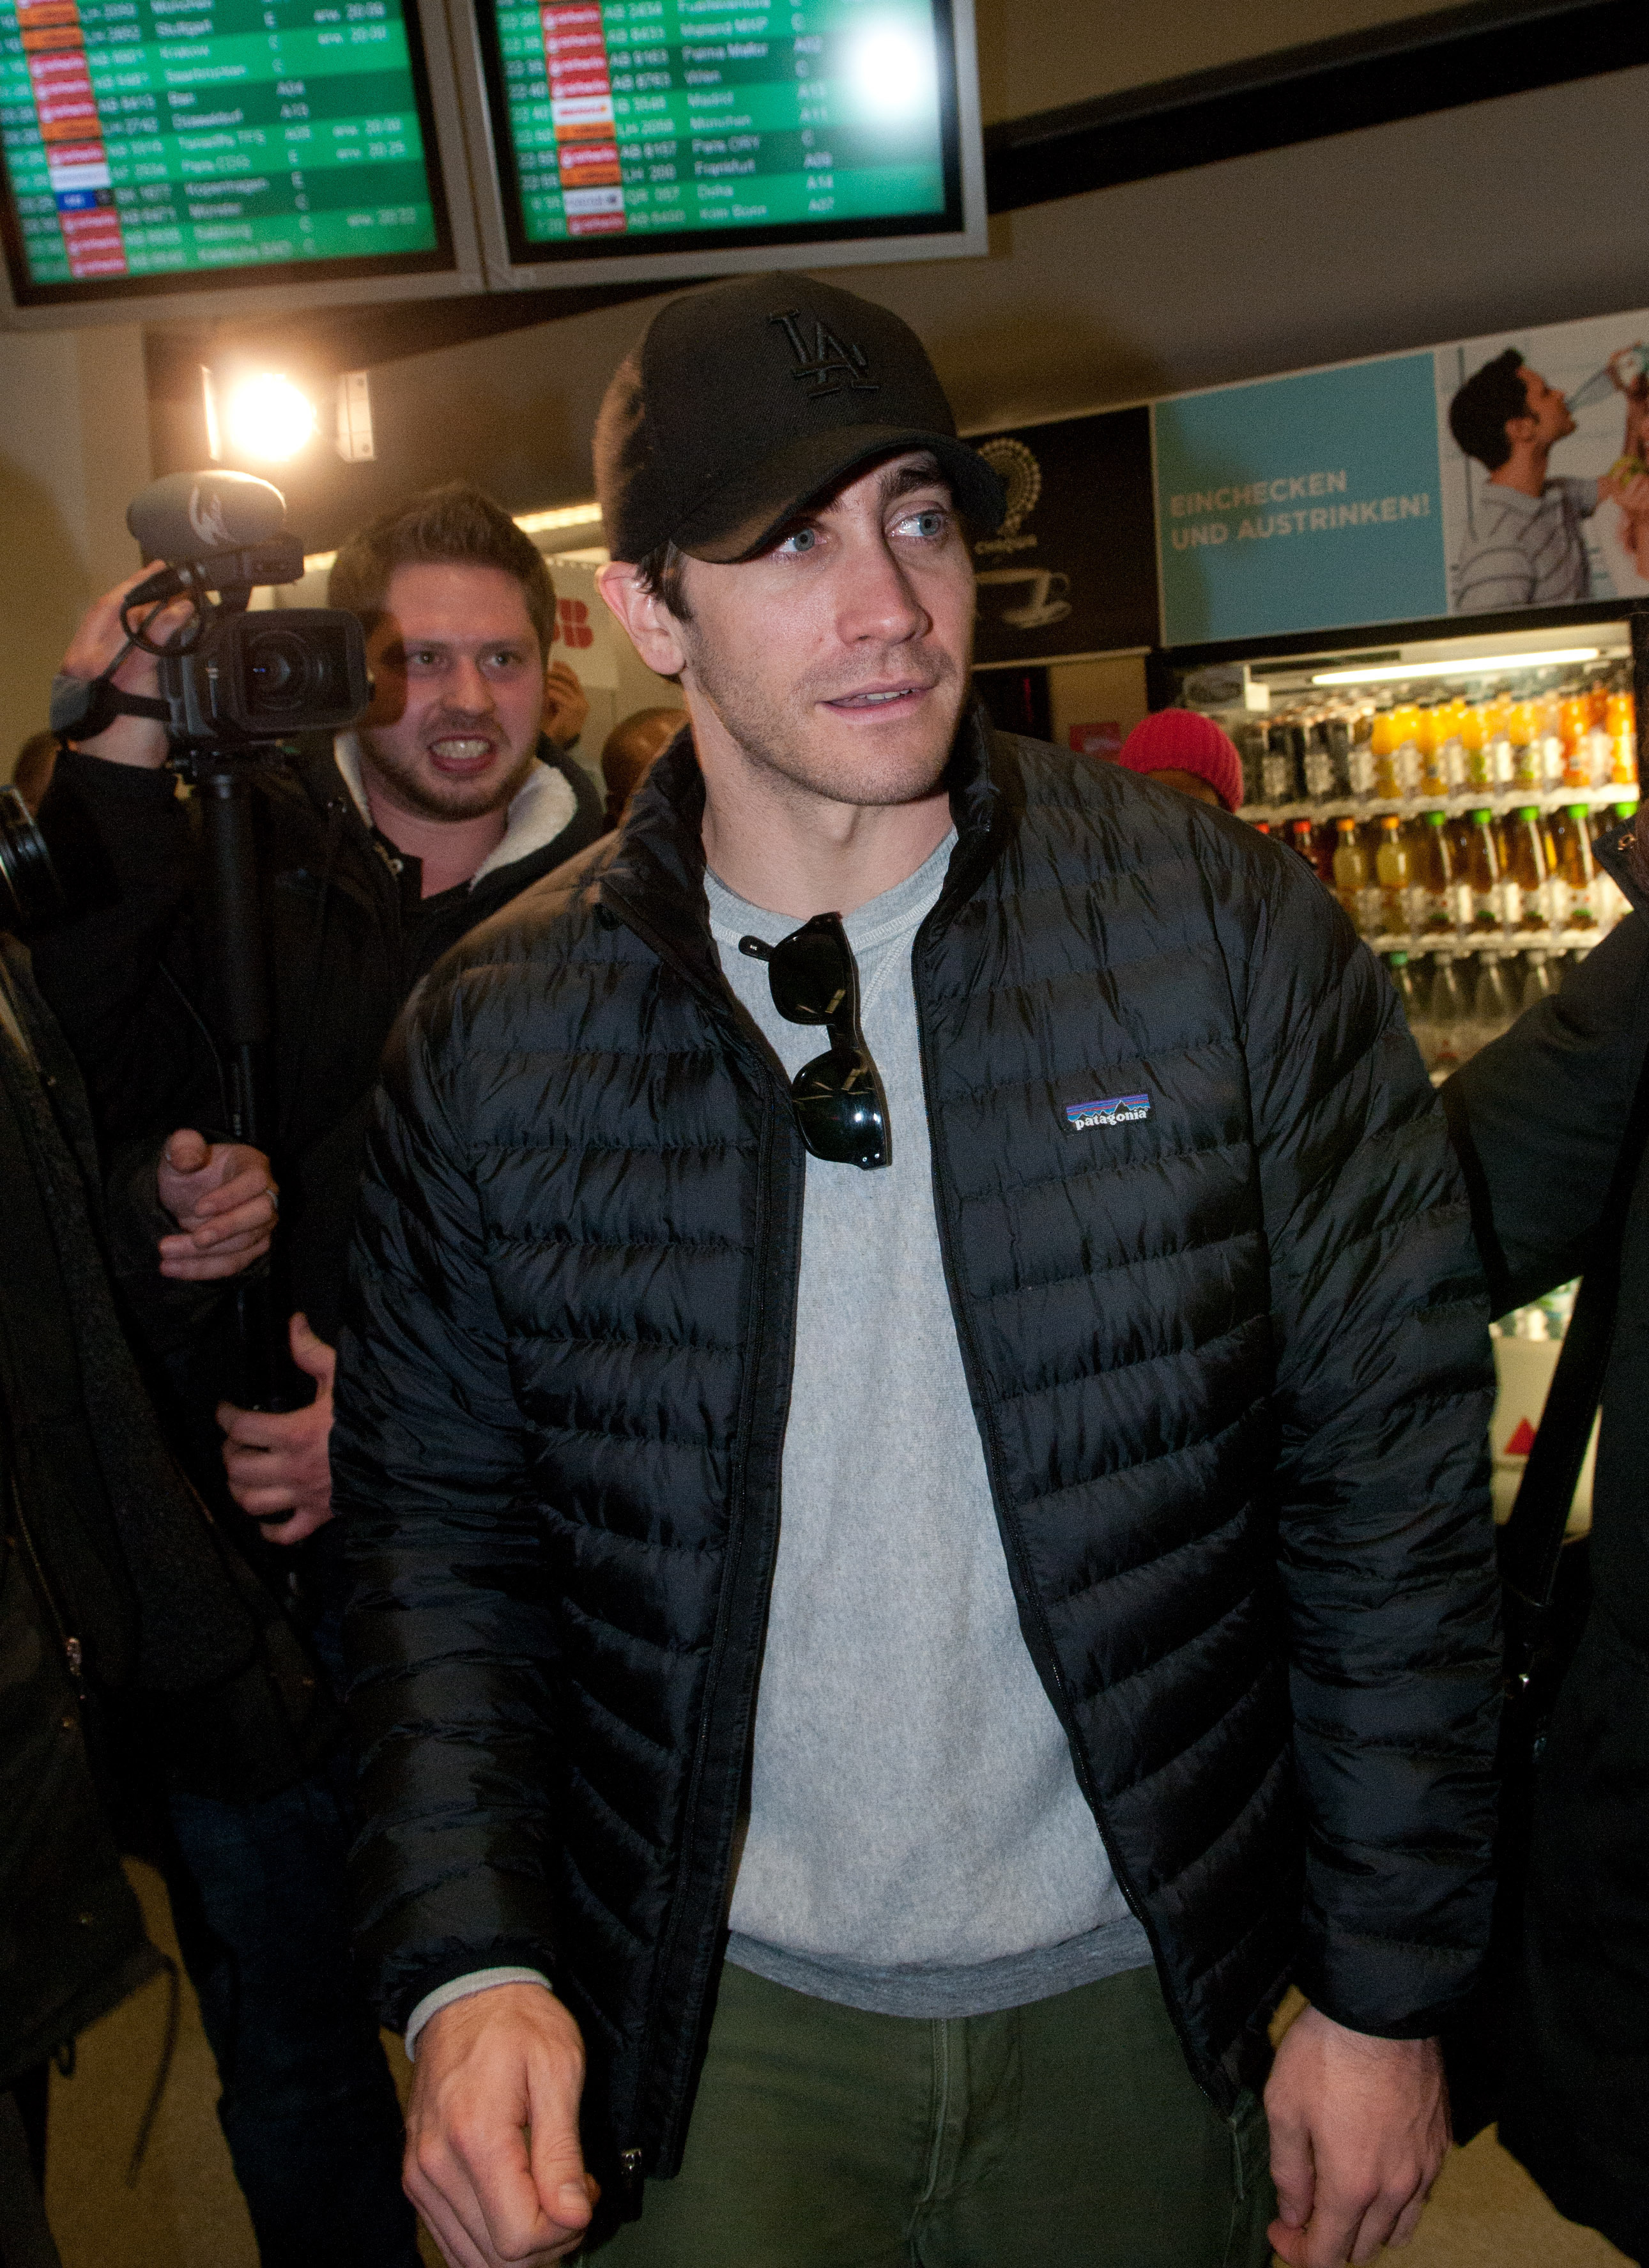 Jake was met with a film crew and photographers eager to capture his arrival into Germany.